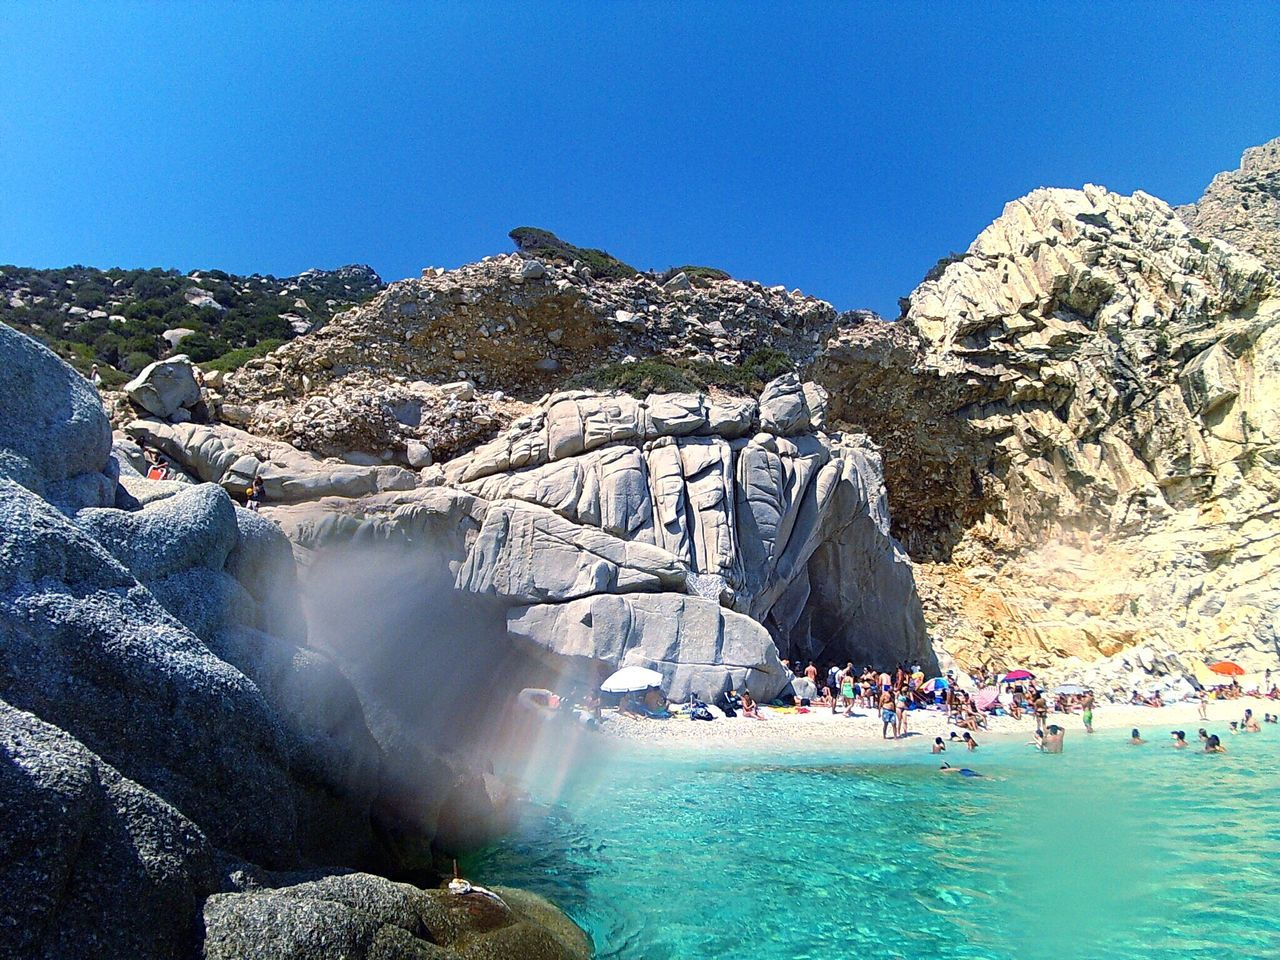 Seychelles Beach Ikaria GREECE ♥♥ Ikaria Greece Paradise Beach By The Sea Awsomenature Greek Islands Greek Beauty